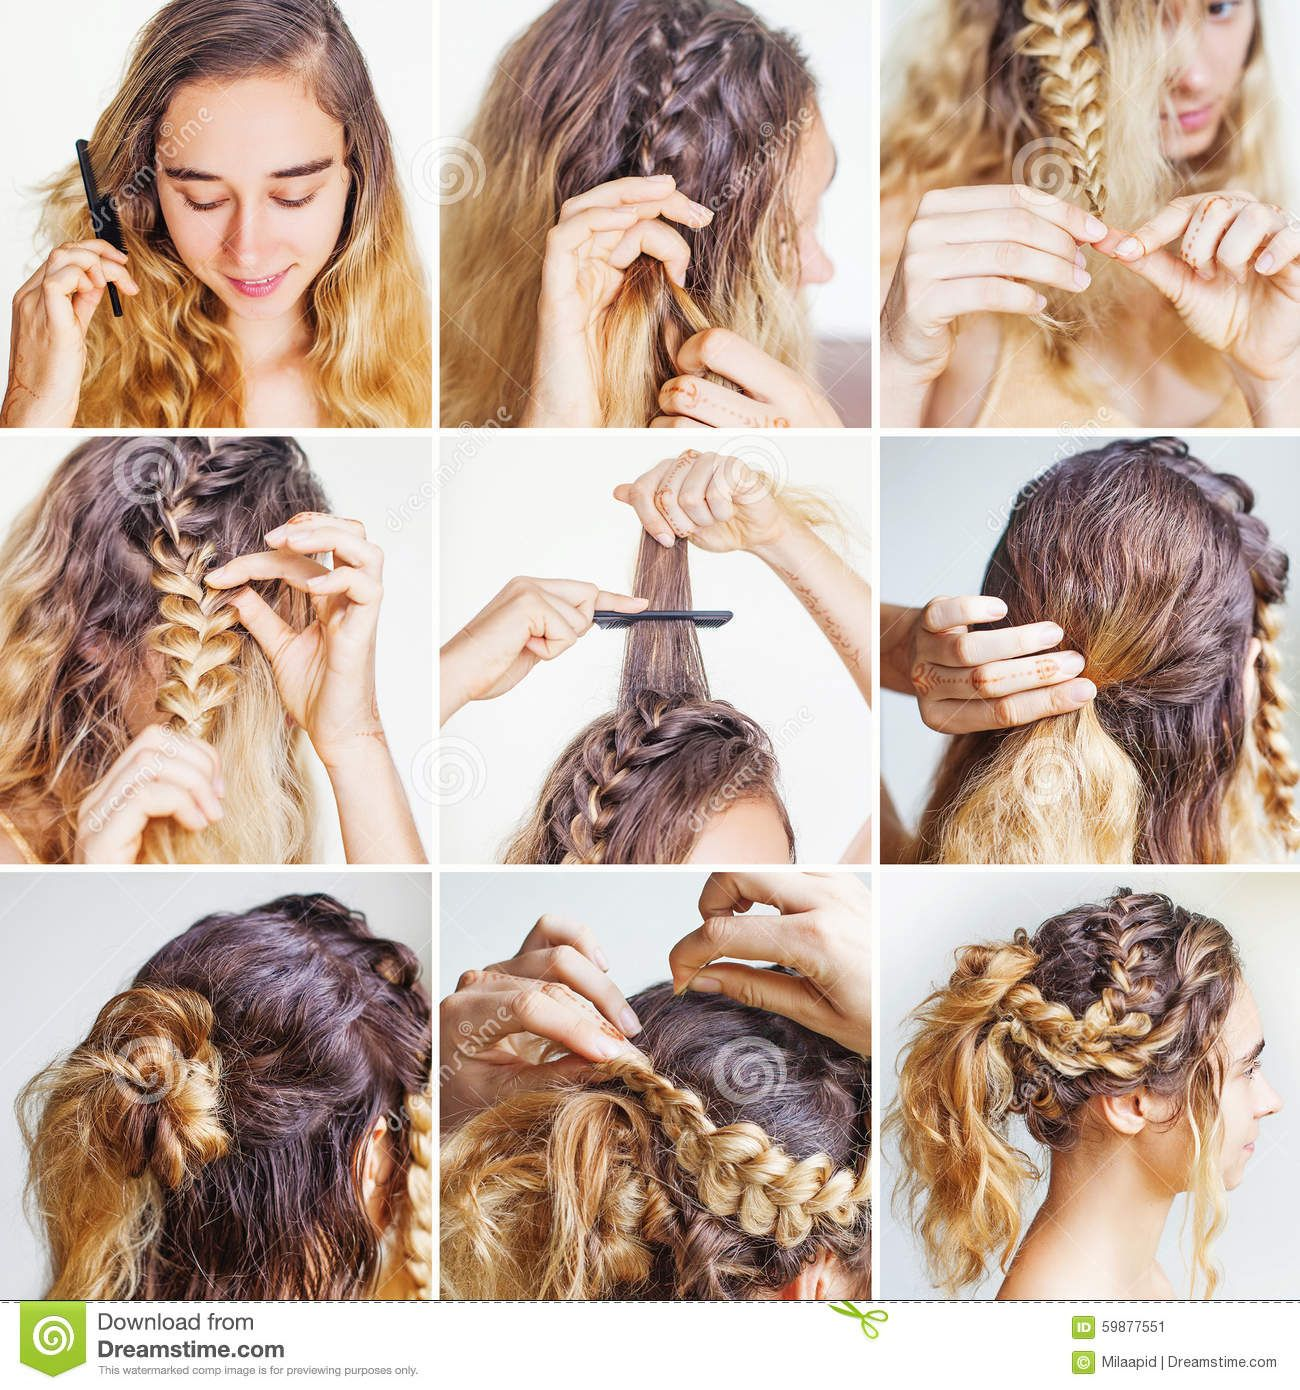 Braided Updo Tutorial For A Curly Hair Download From Over 54 Million High Quality Stock Photos Image Curly Hair Styles Curly Hair Beauty Braid Updo Tutorial